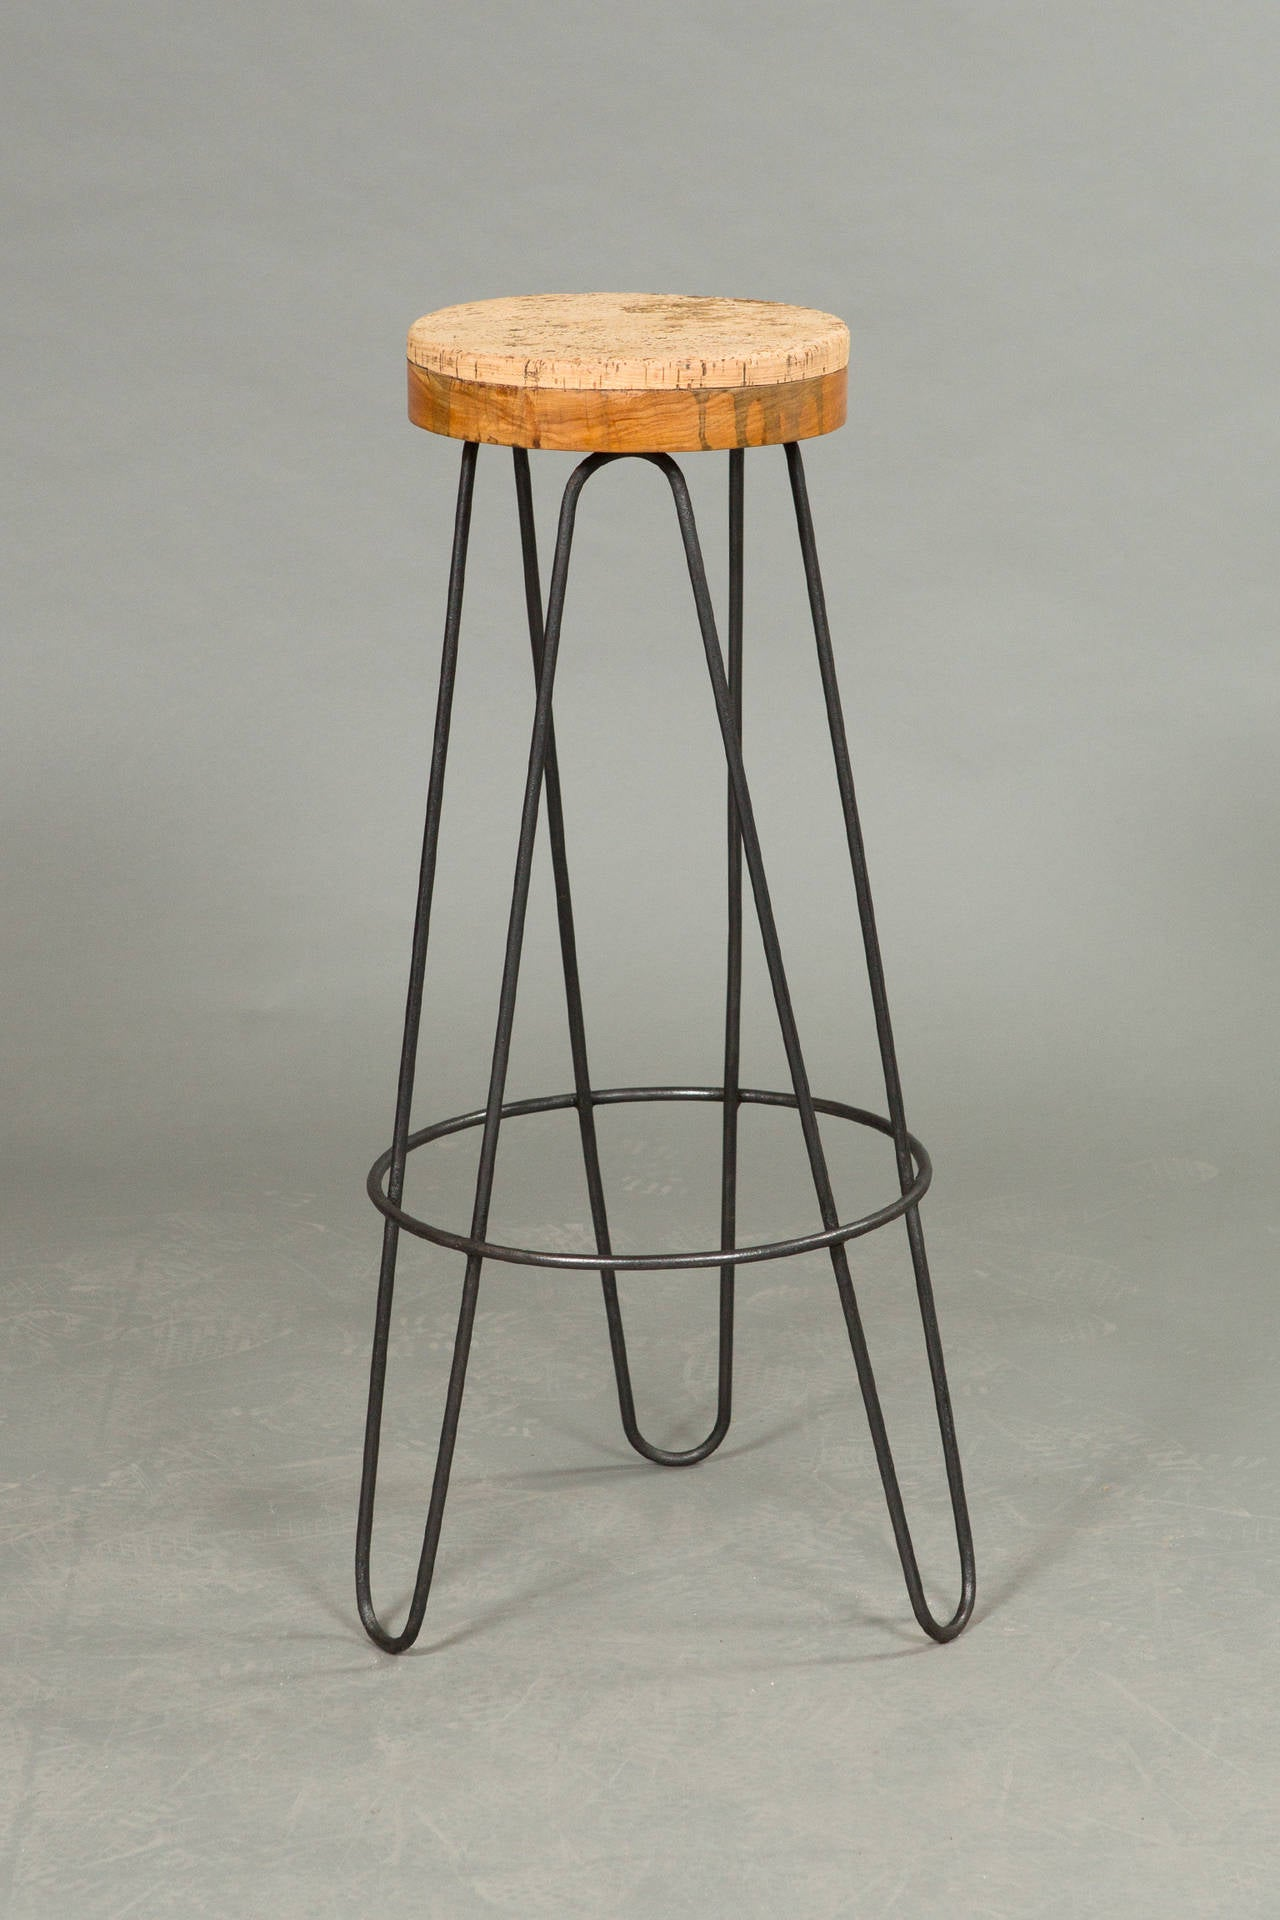 Pair of 1960s Industrial stools with hairpin style legs in the style of Florence Knoll. Iron legs and cork top mounted top.